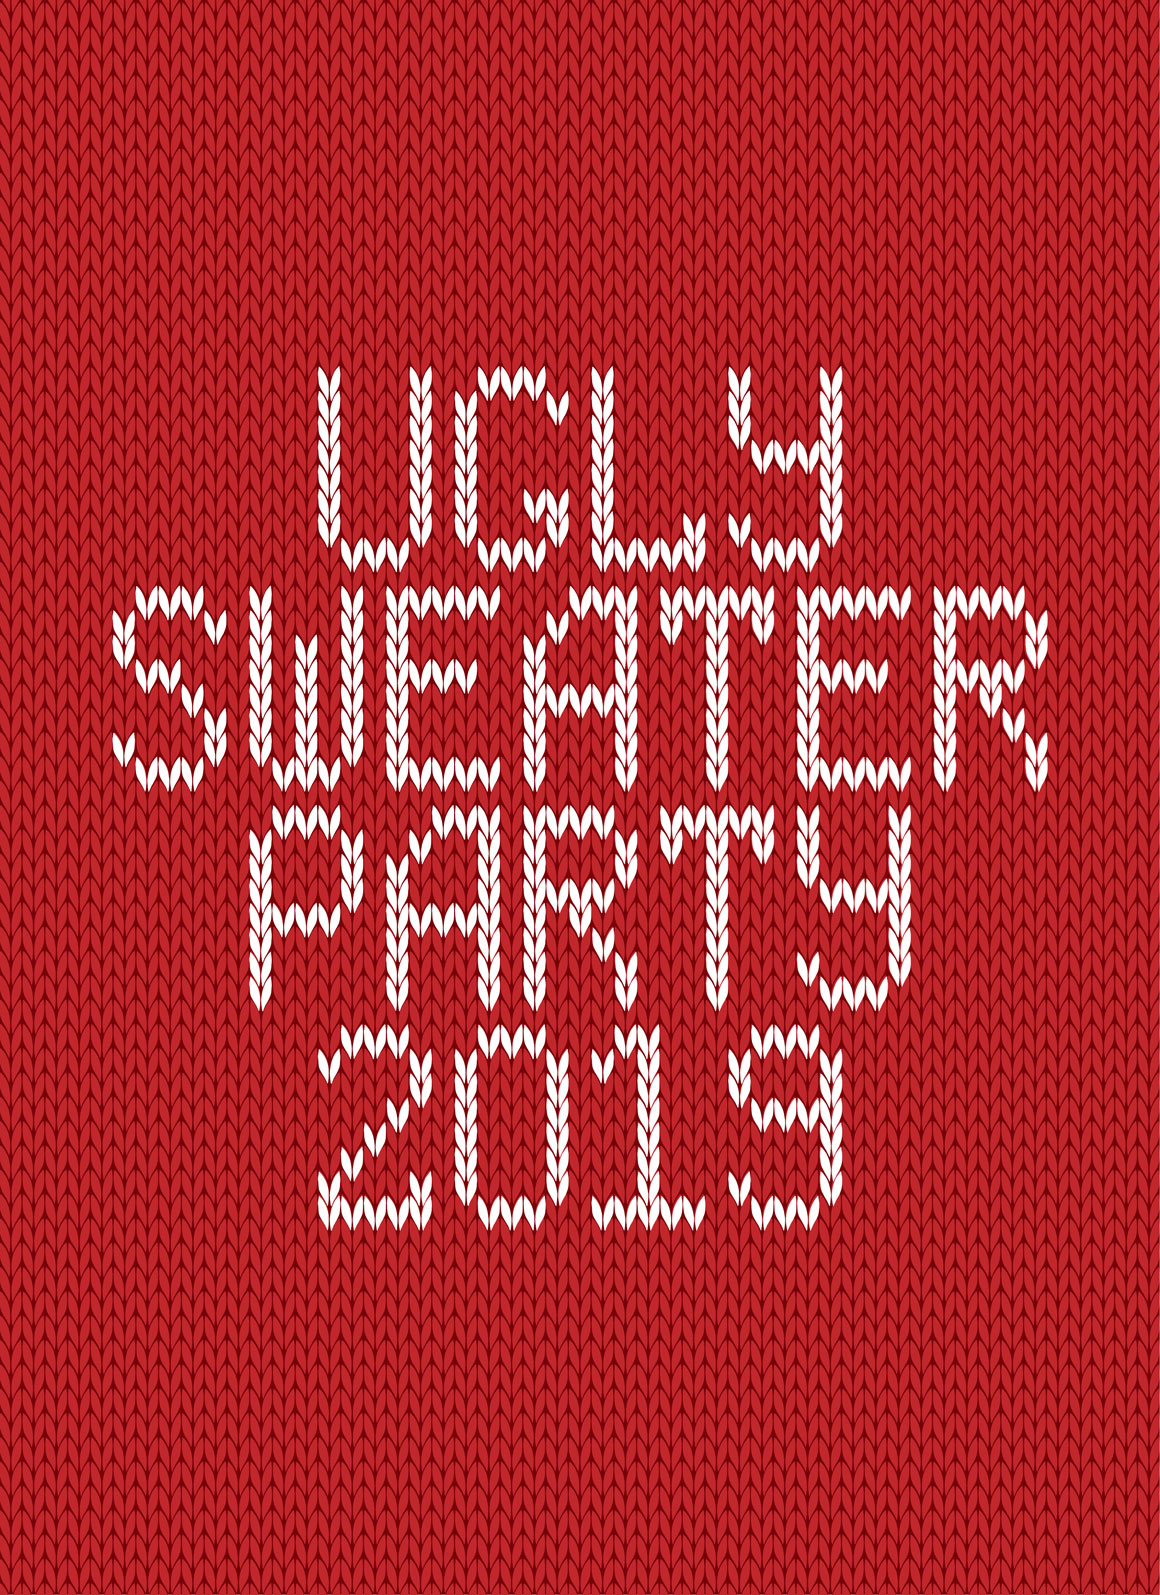 Christmas Knitted Font Ol Version 2.0 example image 6